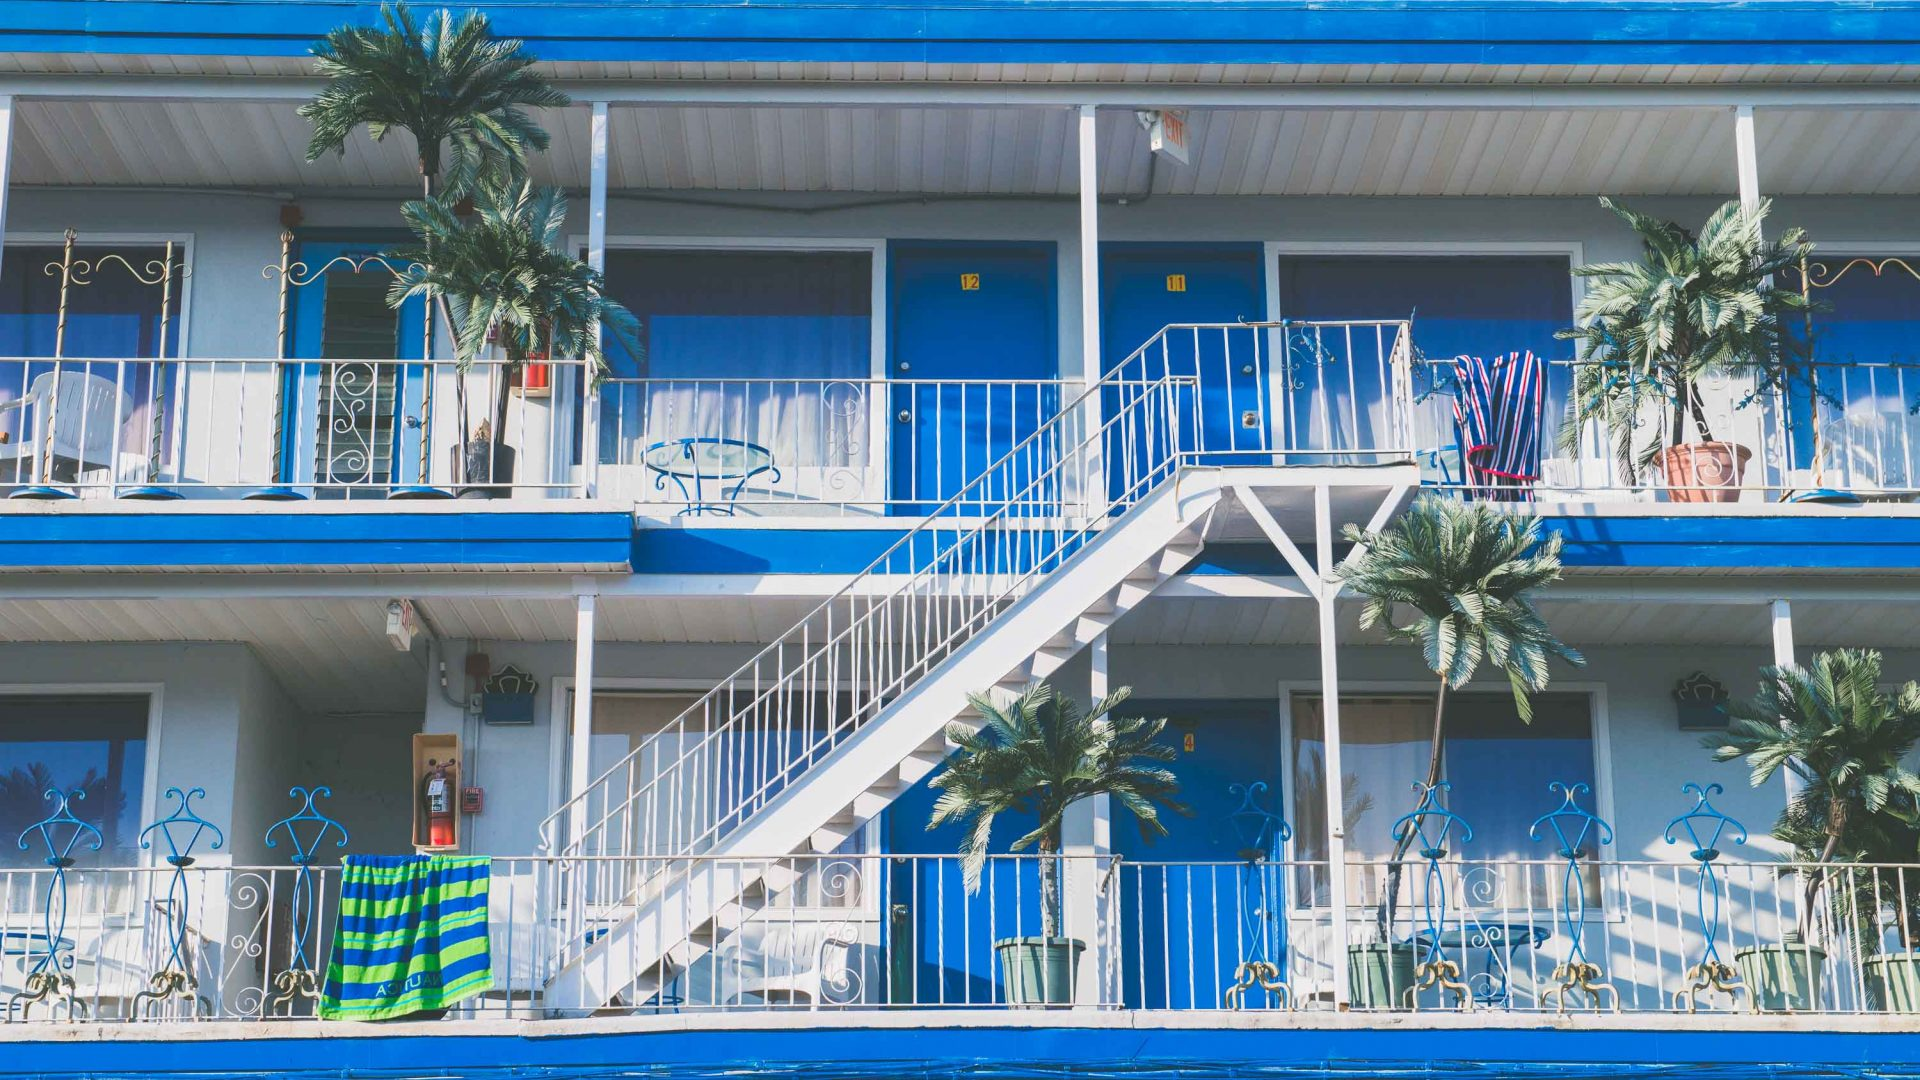 An example of the modern, mid-century motel architecture of Wildwood, New Jersey, many of which were built in the 1950s.